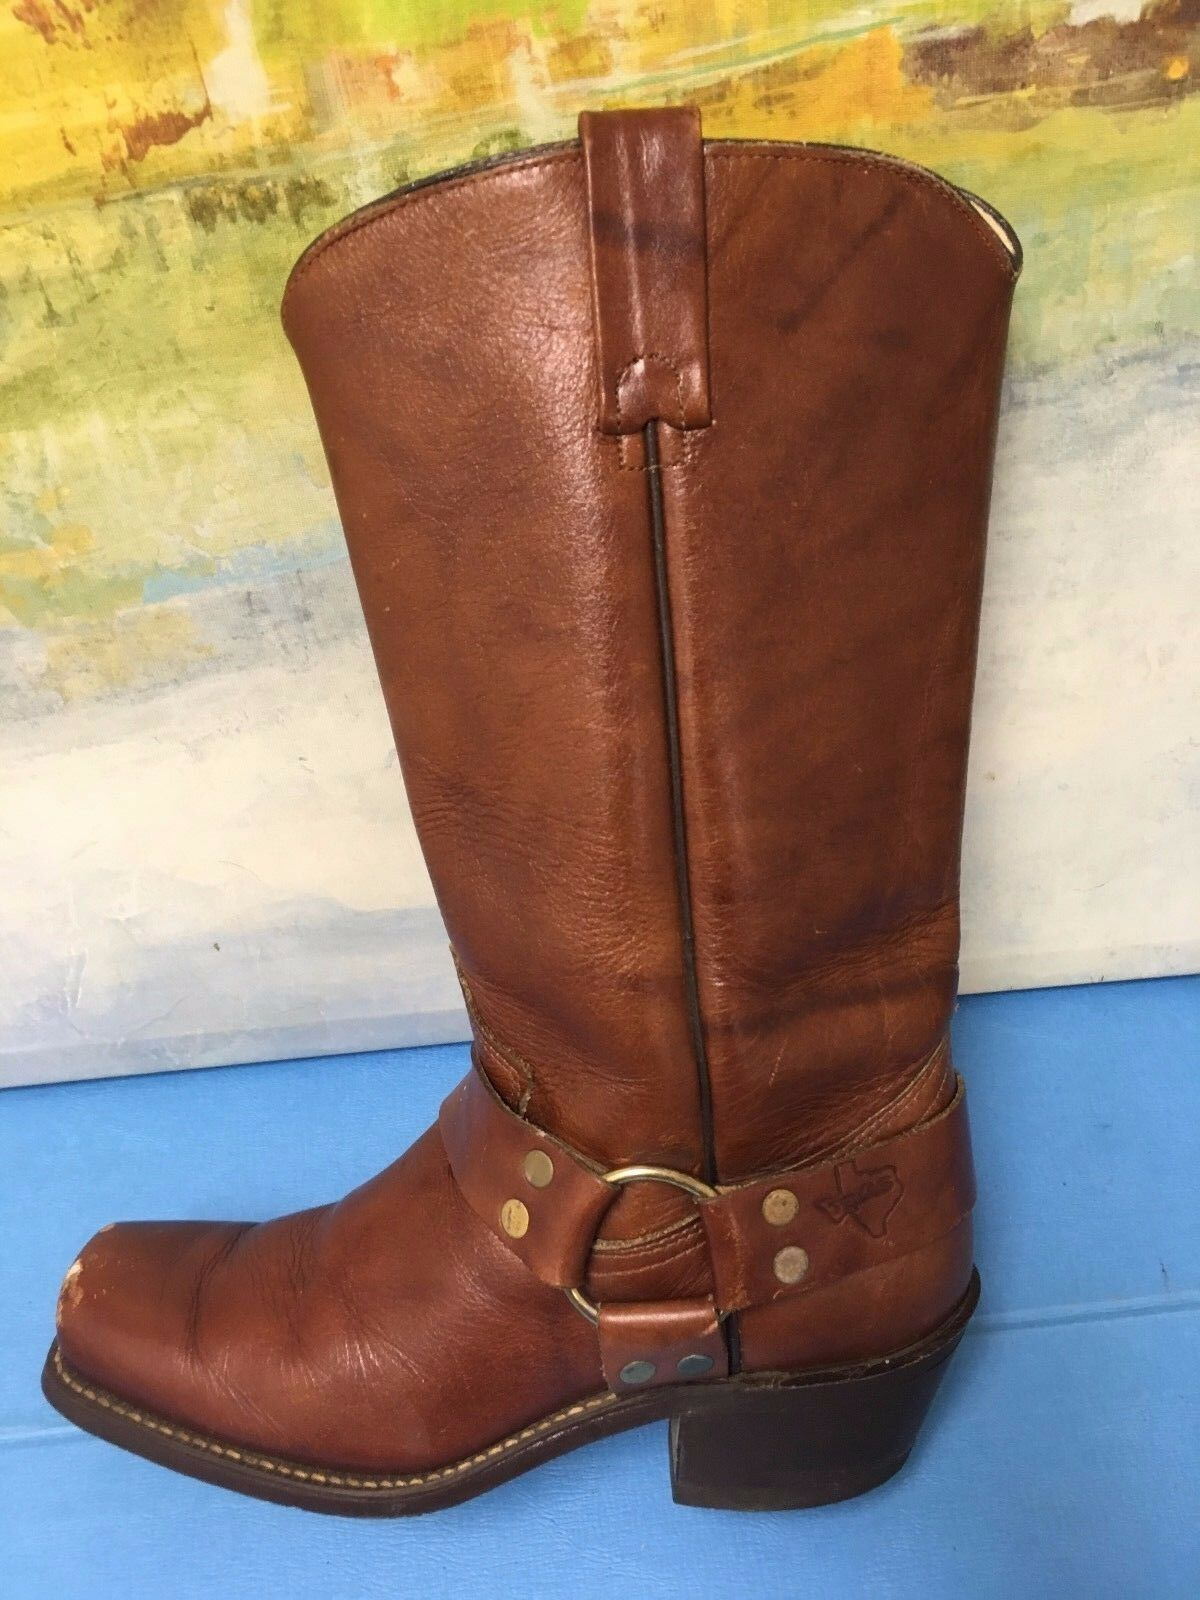 TEXAS BRAND Distressed Leather Harness Stiefel Sz 61 2 D